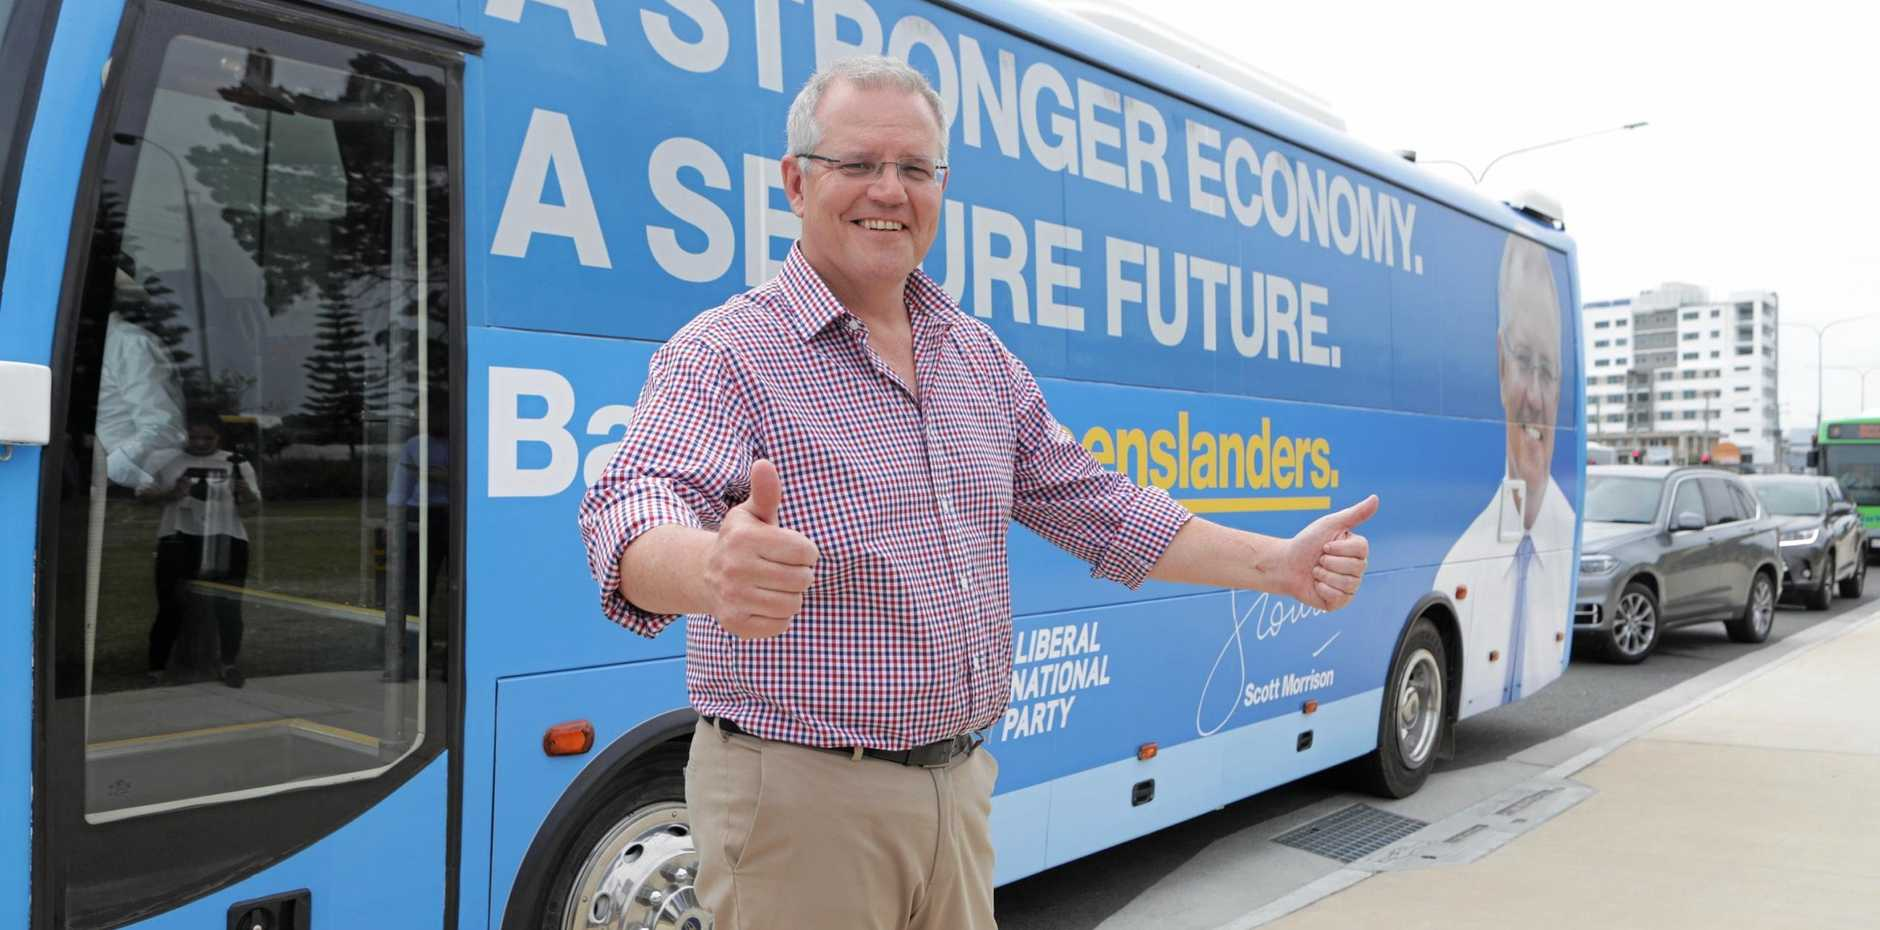 Prime Minister Scott Morrison is pictured during the first day of his blue bus tour in the Gold Coast. He is expected to arrive in Gladstone today.